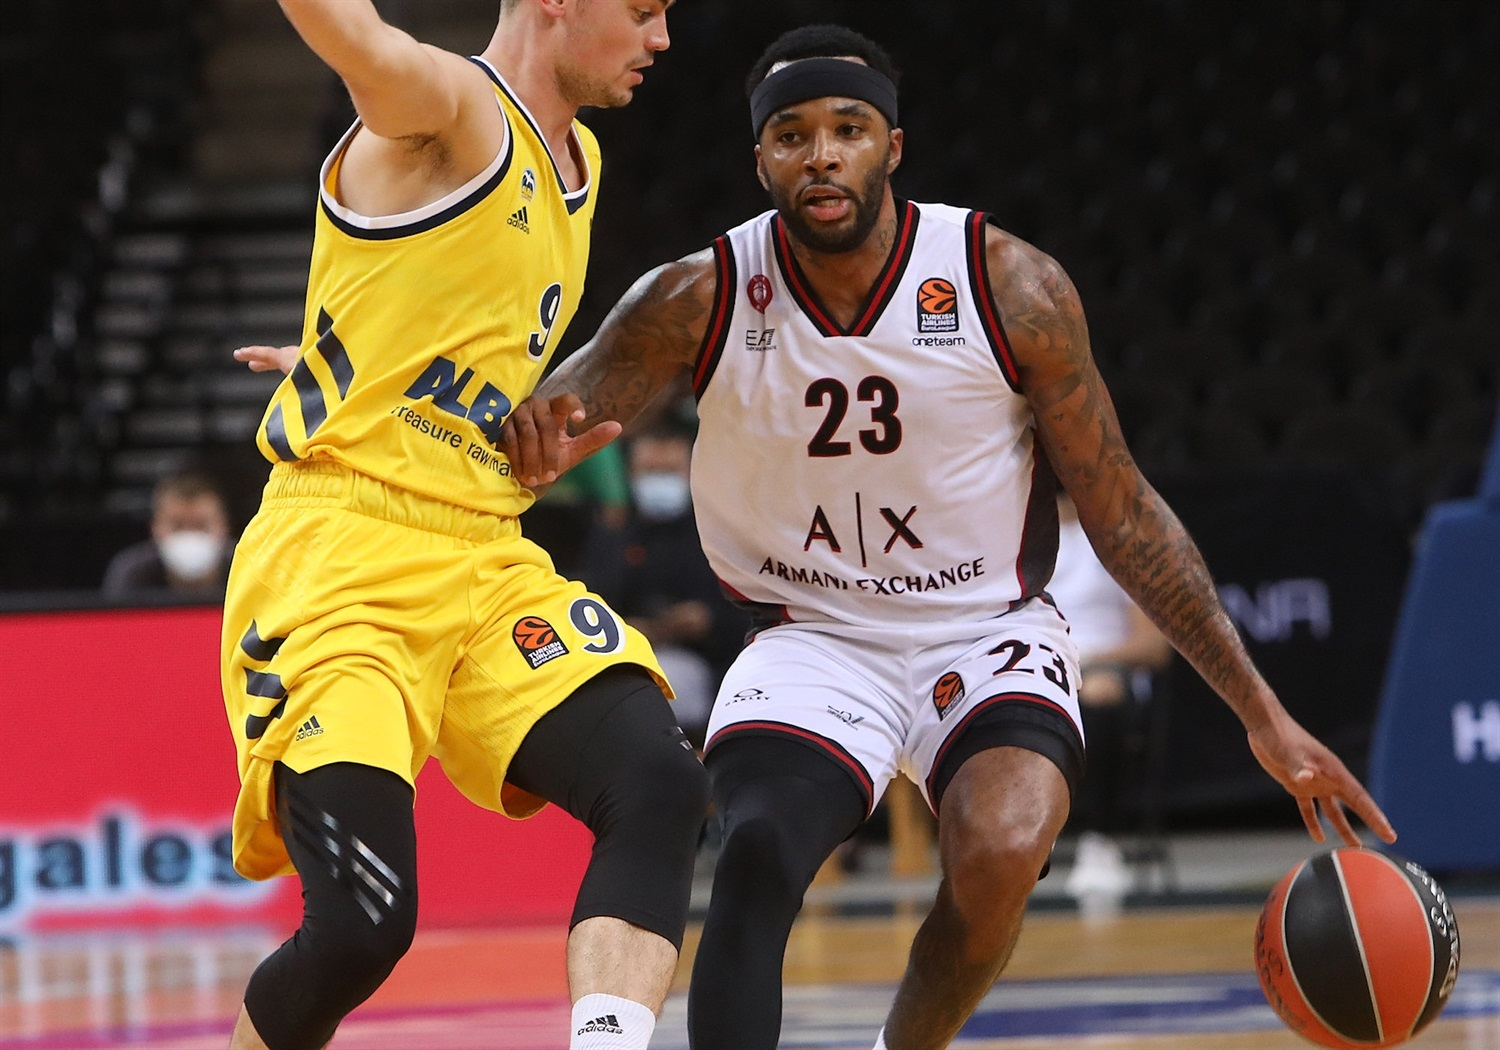 Malcolm Delaney - AX Armani Exchange Milan - Preseason Tour Kaunas 2020 - EB20